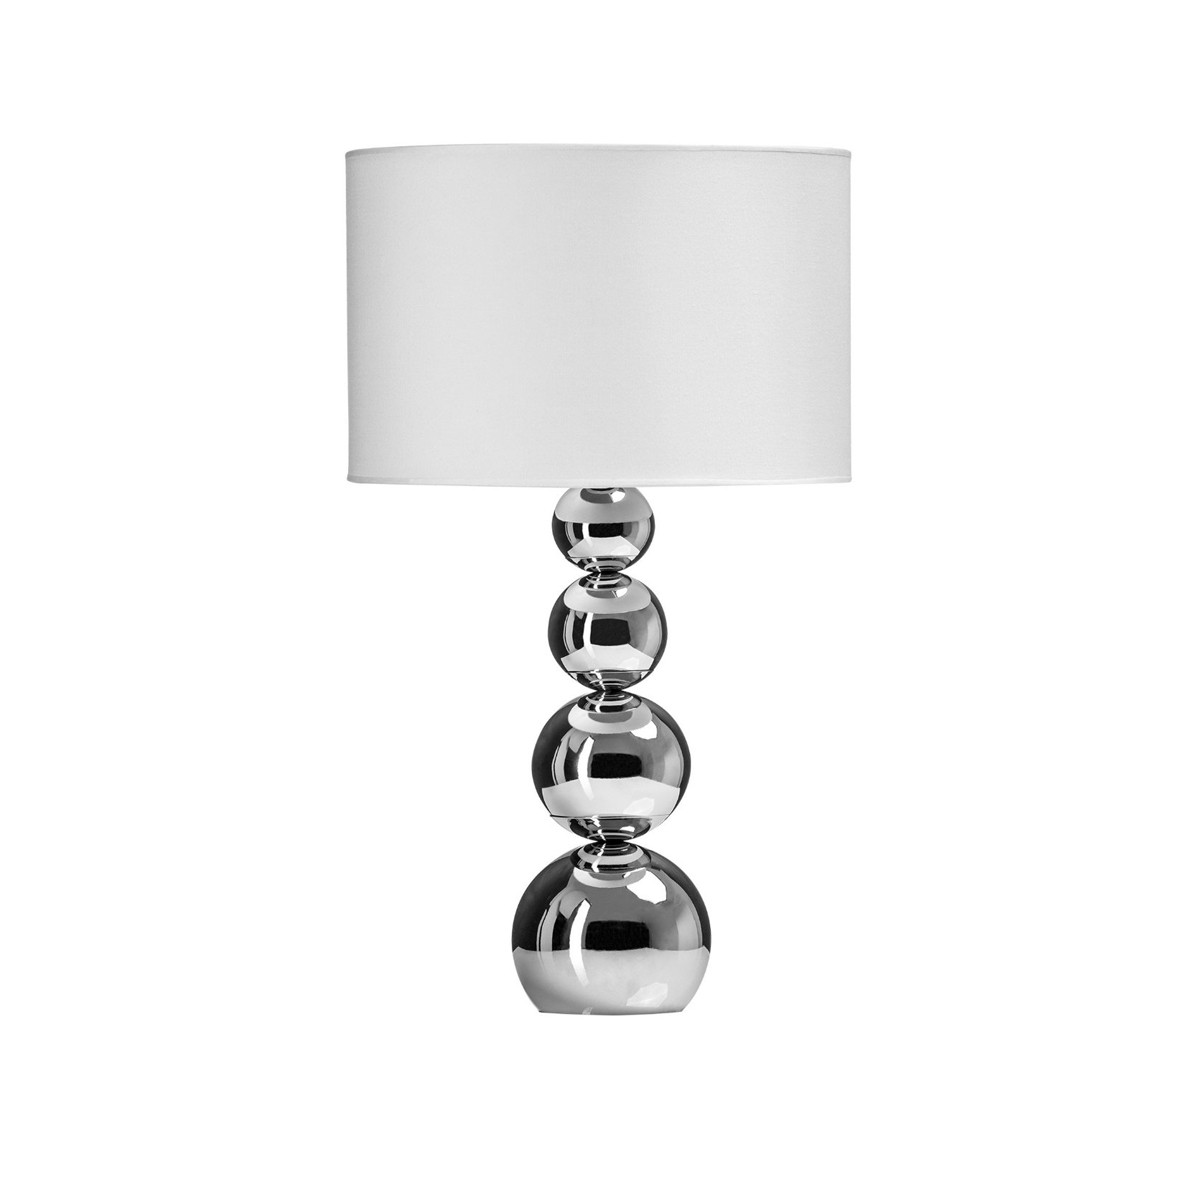 Rise - Chrome Table Lamp with White Shade